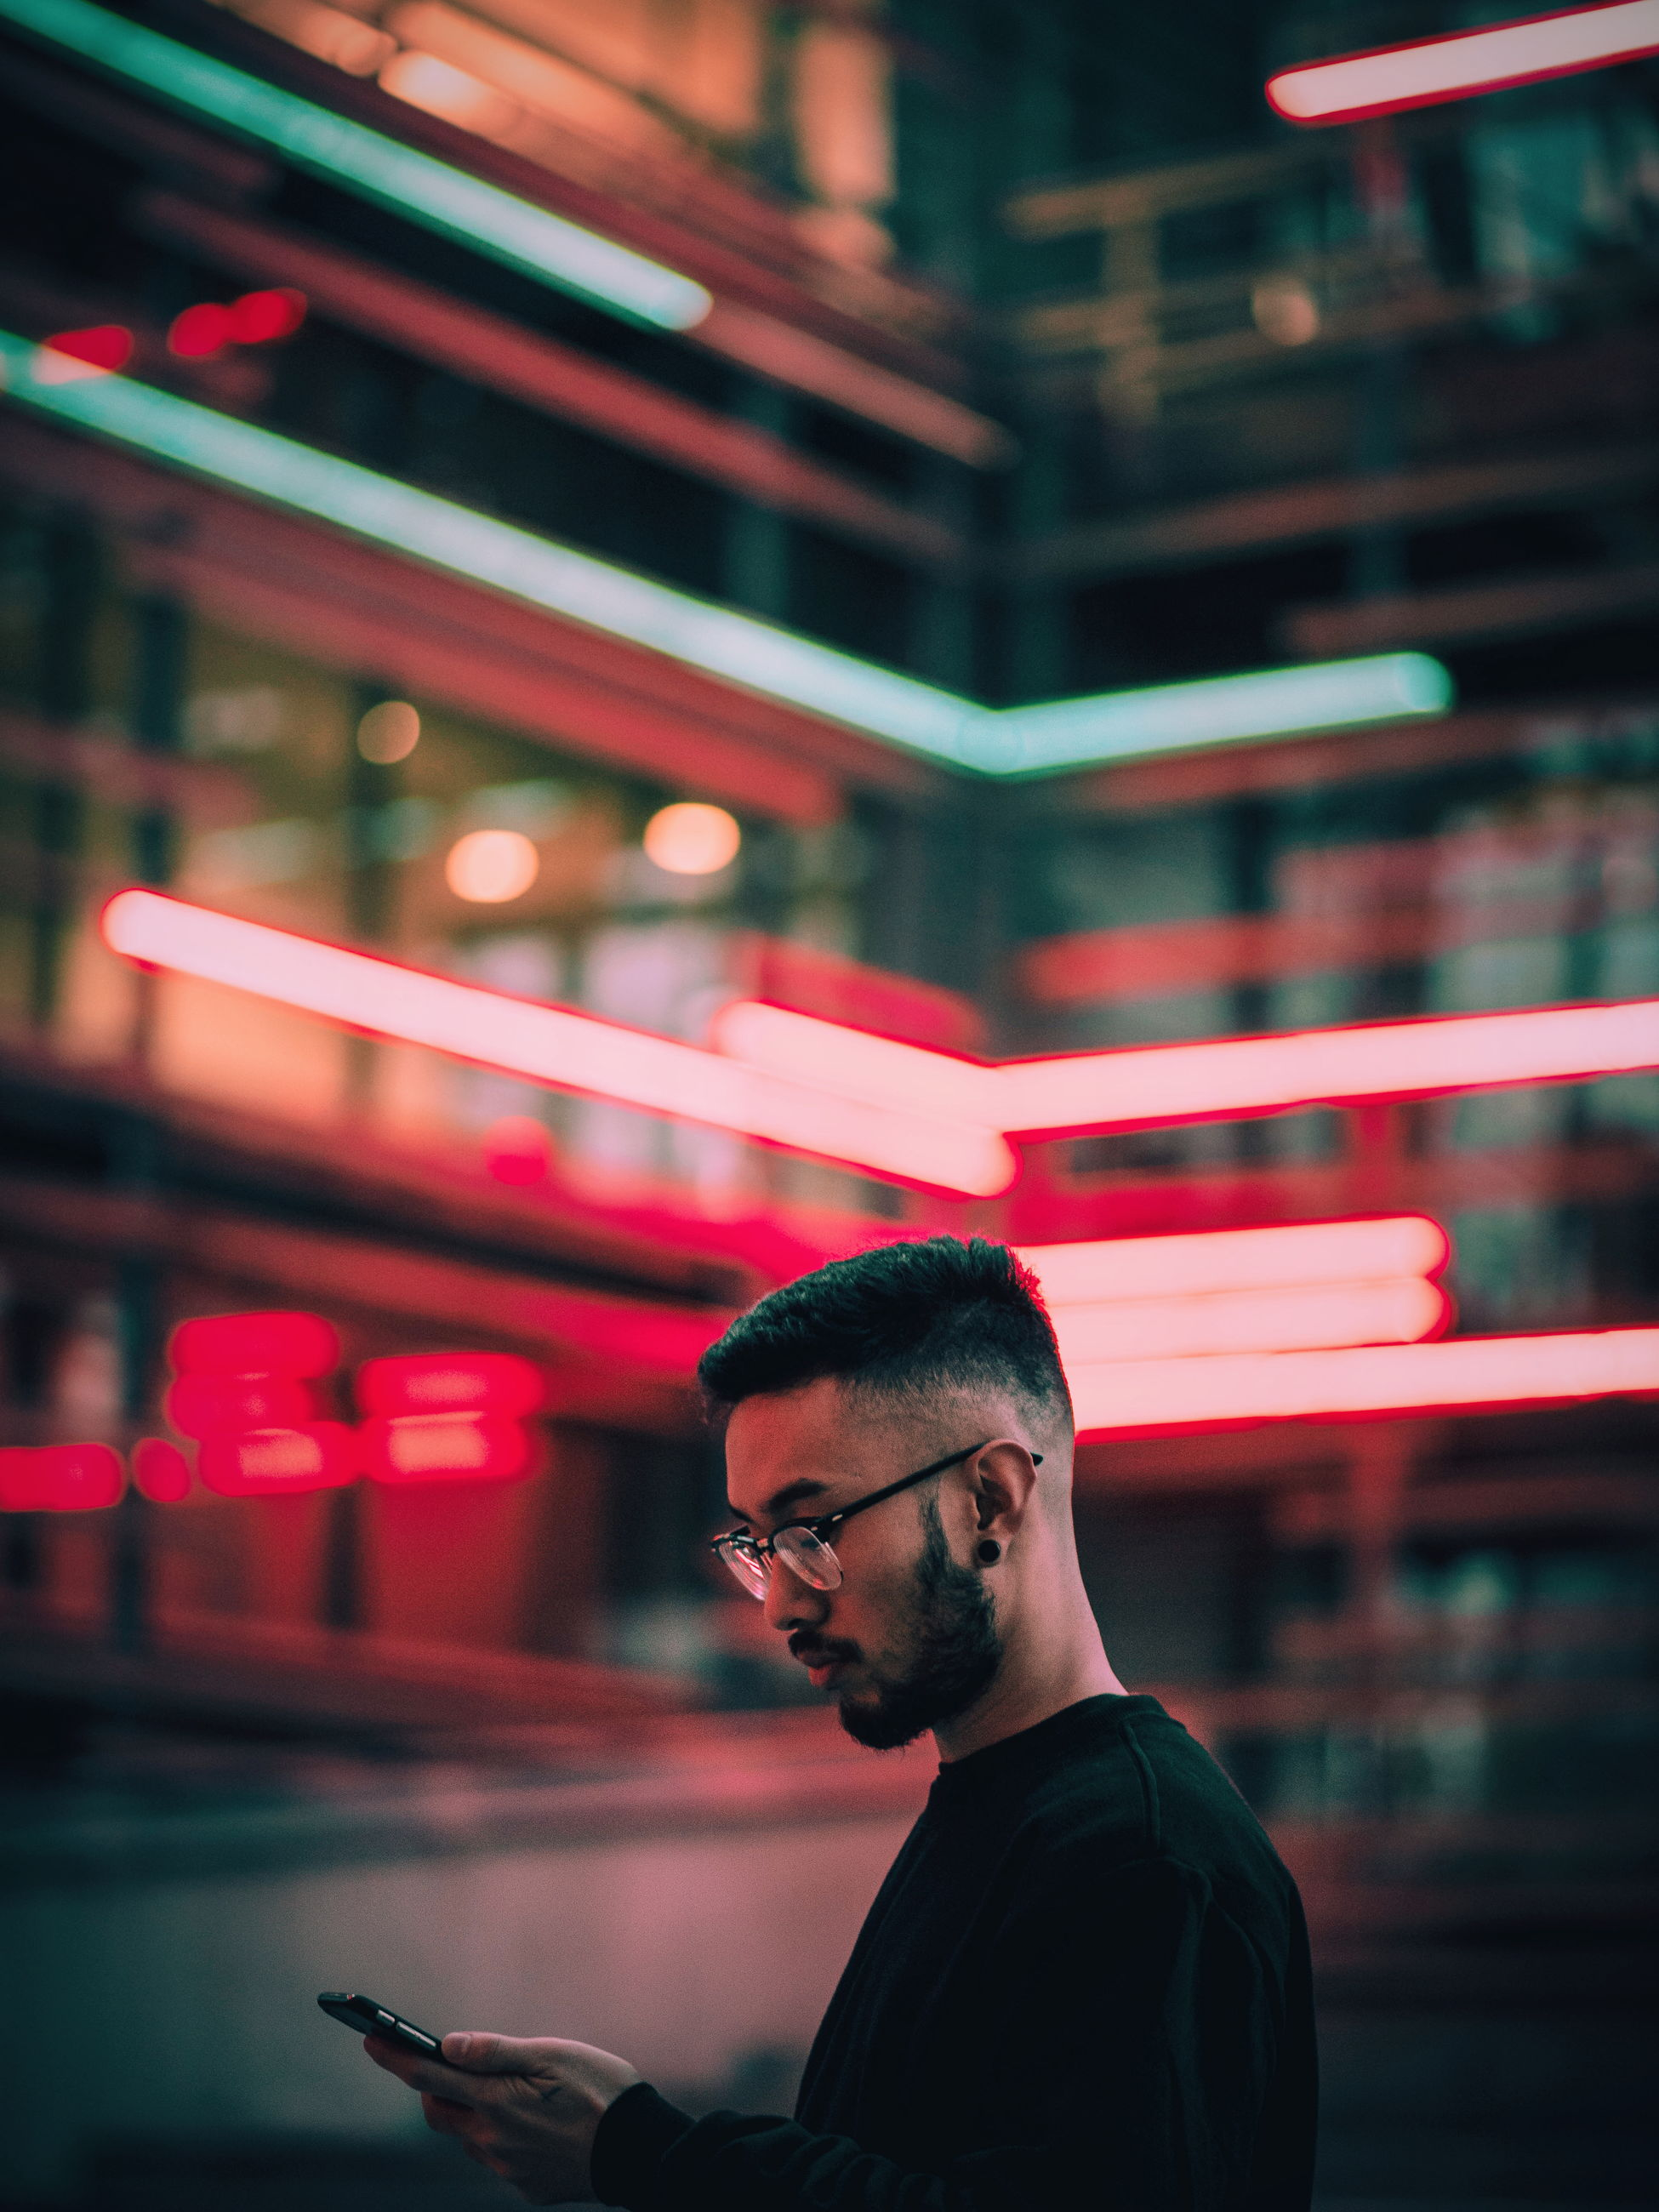 one person, real people, young adult, eyeglasses, illuminated, young men, focus on foreground, technology, lifestyles, wireless technology, night, indoors, people